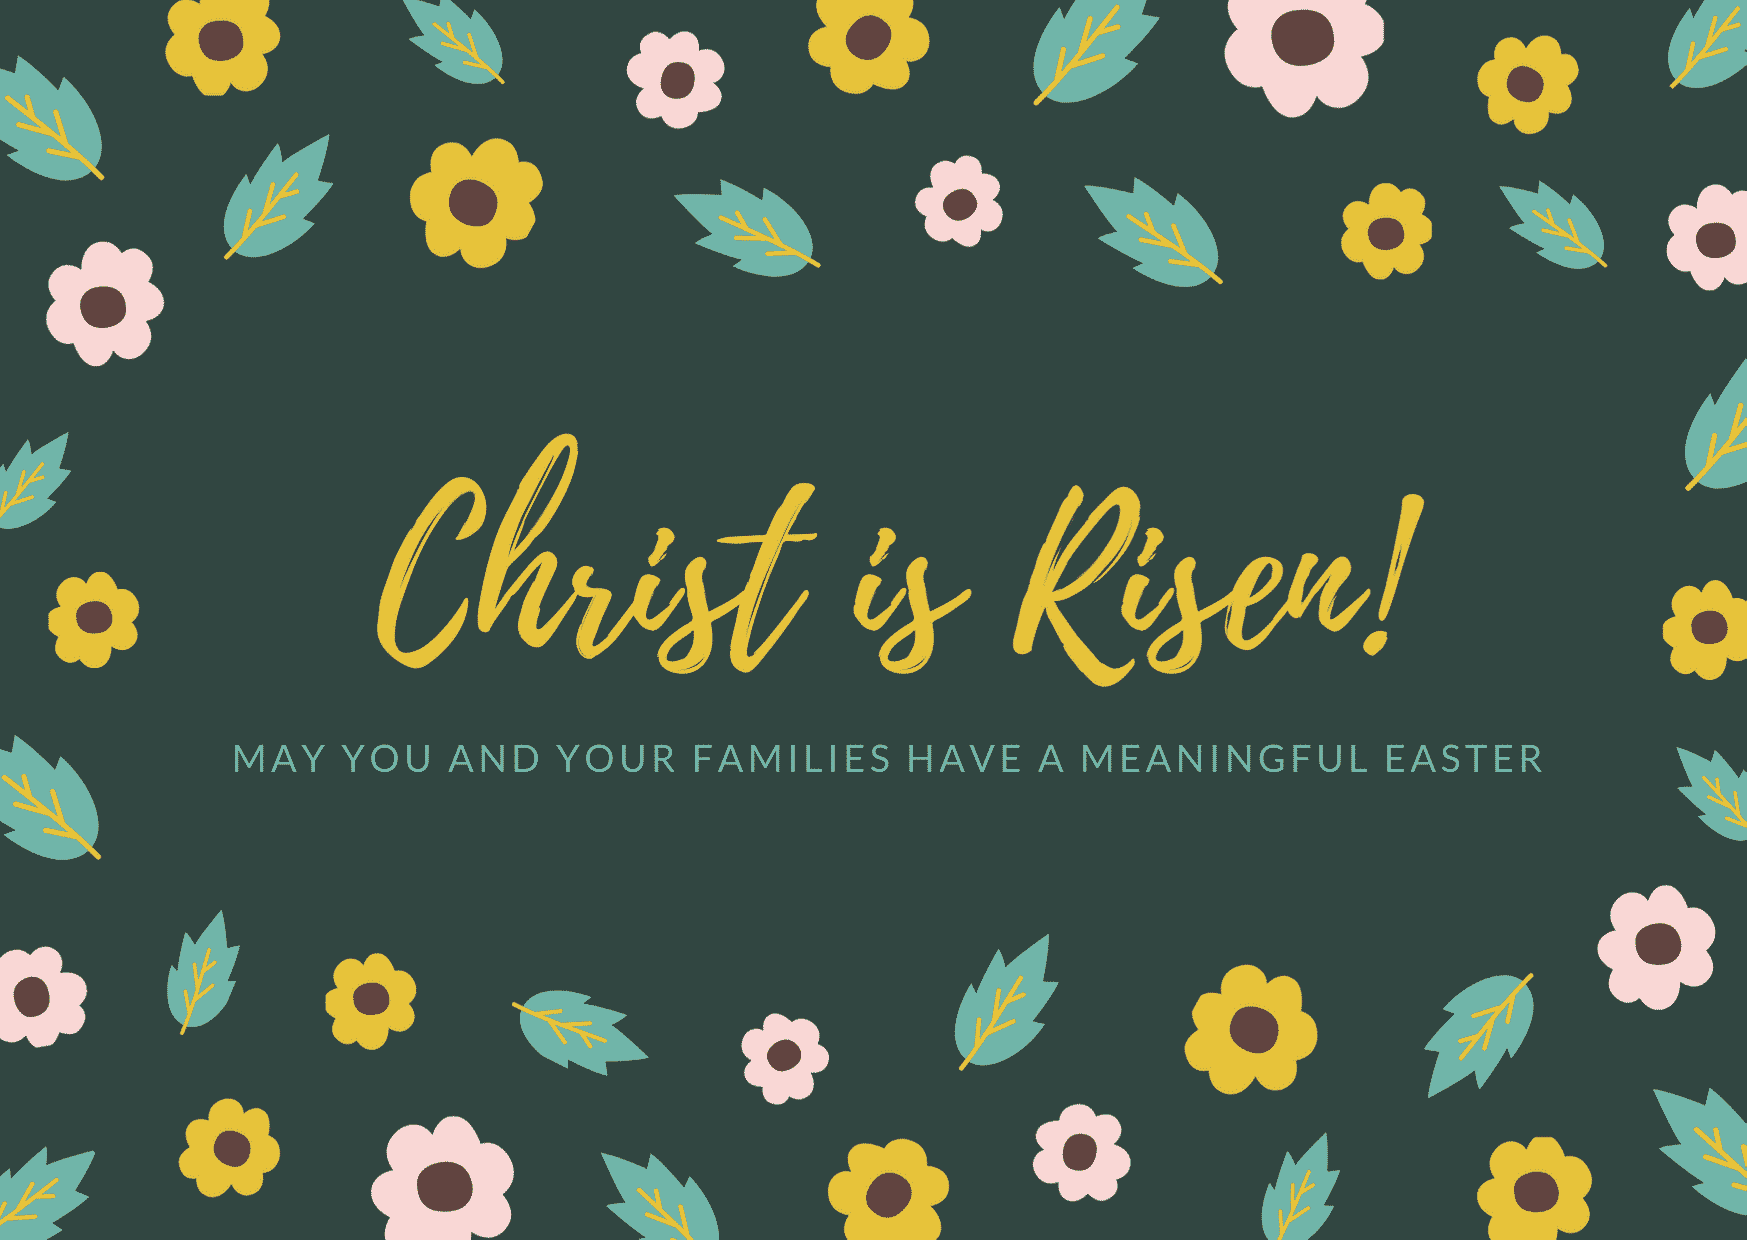 Christian Academy School System | Happy Easter | Christ is Risen!